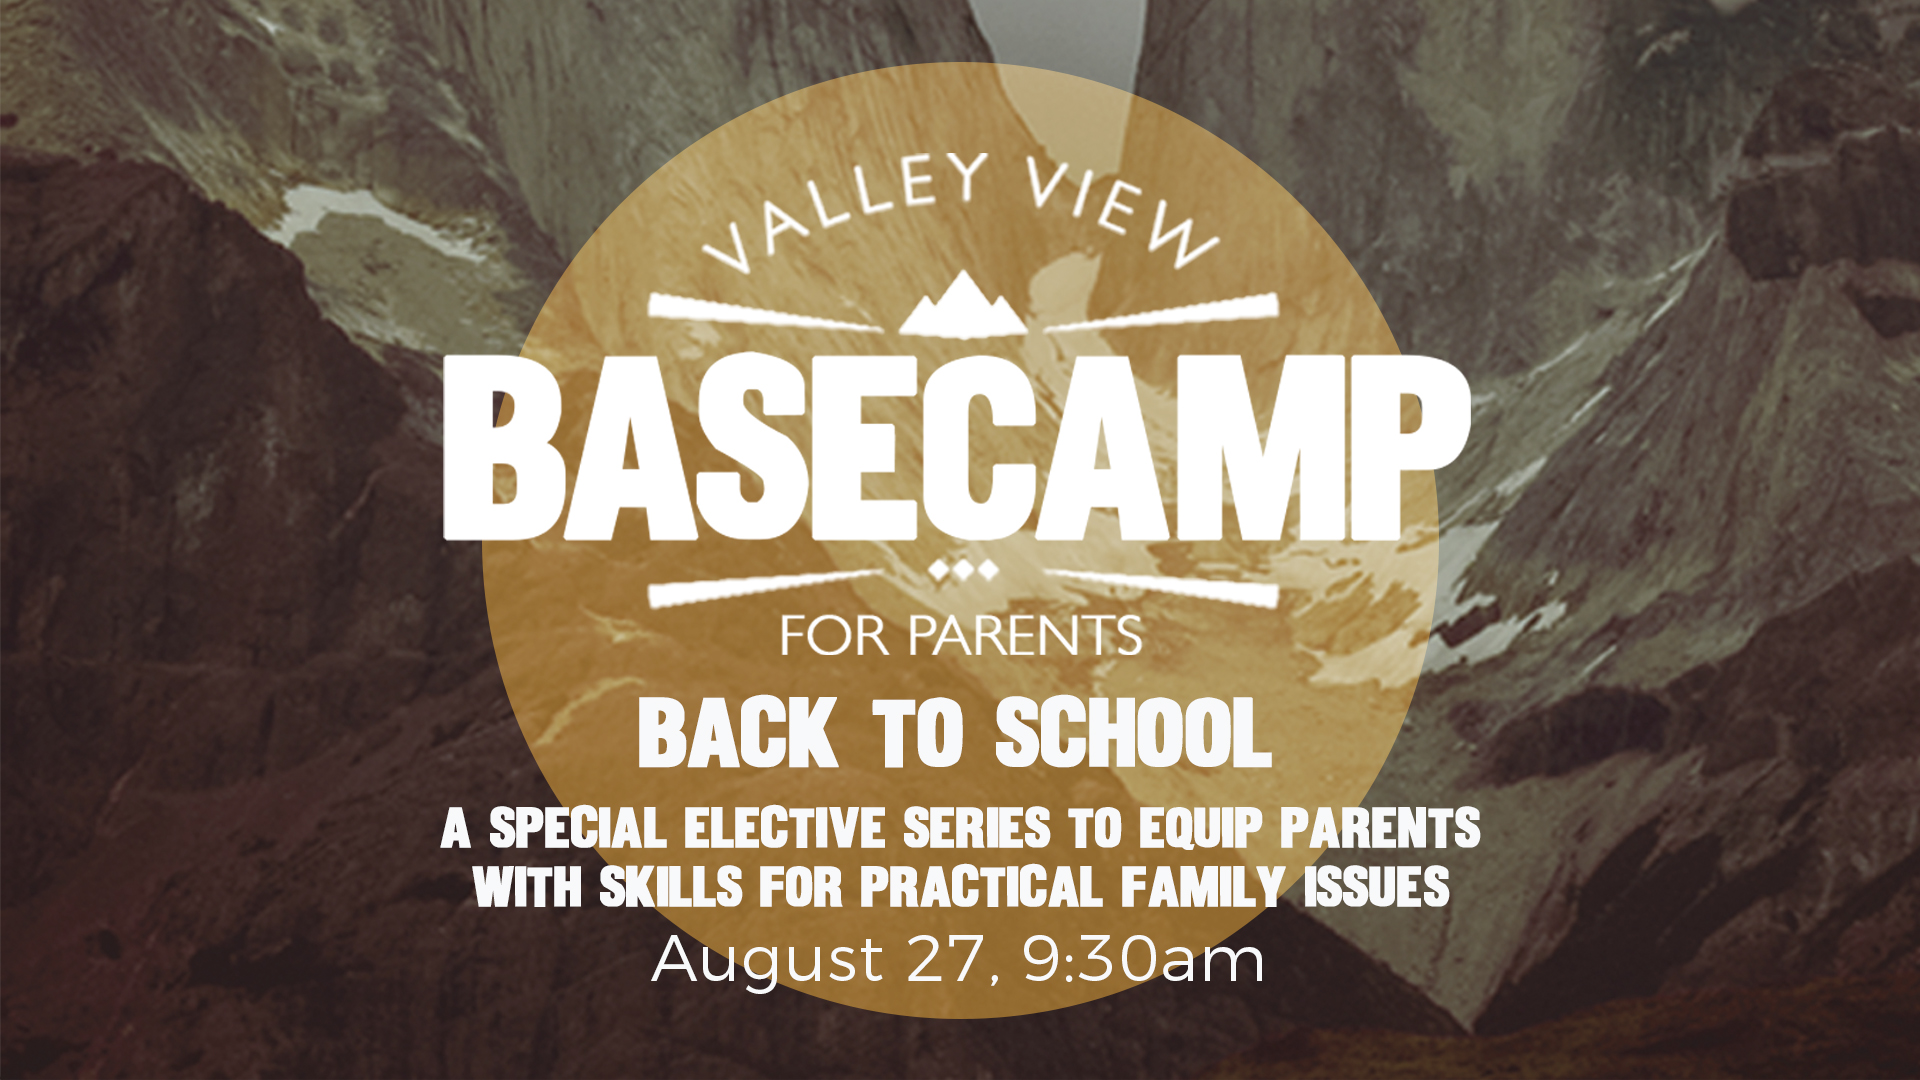 back to school class sunday valley view christian church